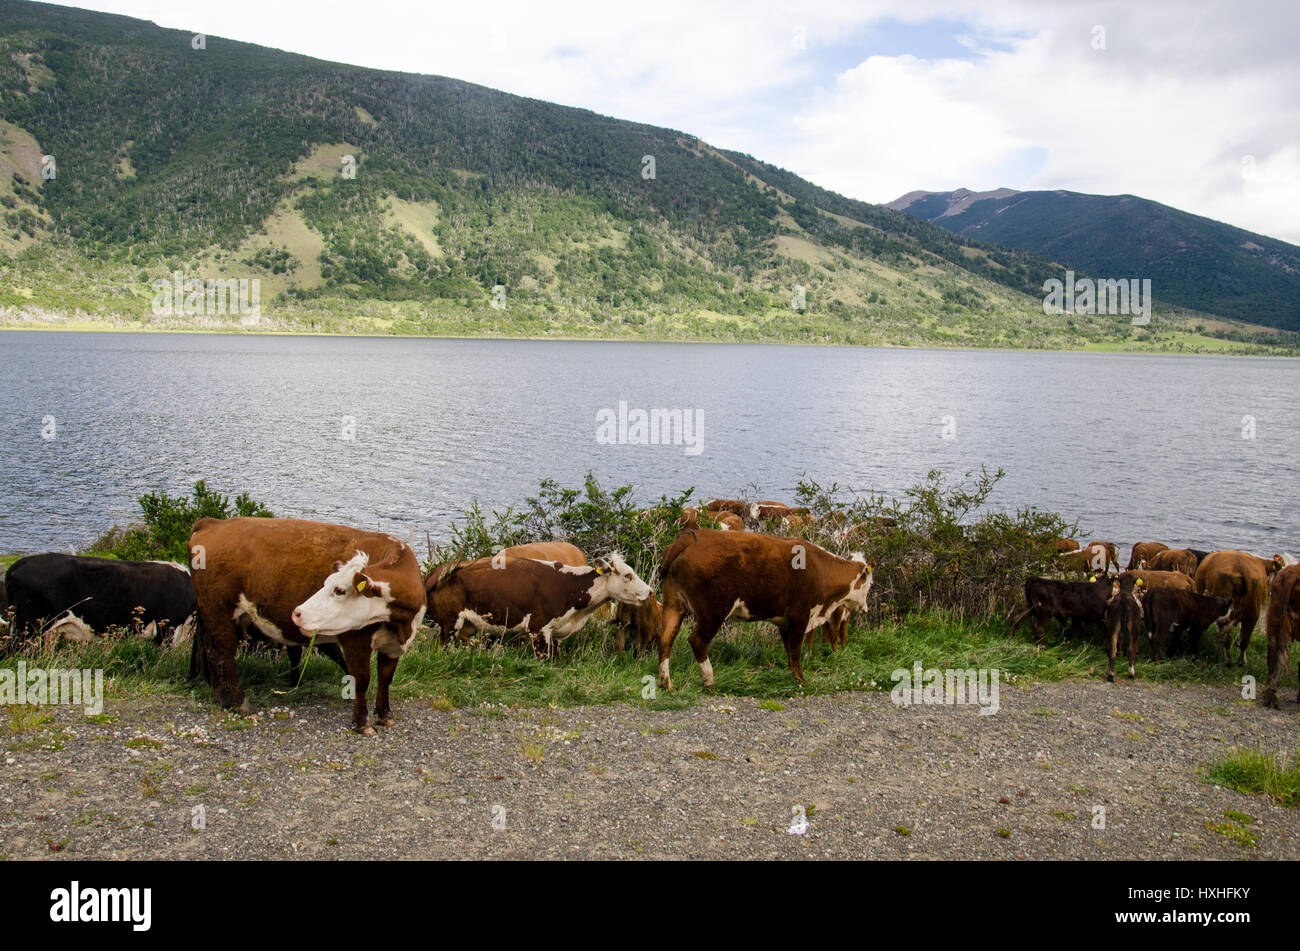 Cows grazing and relaxing. Puerto Puyuhuapi - Patagonia - Chile - Stock Image